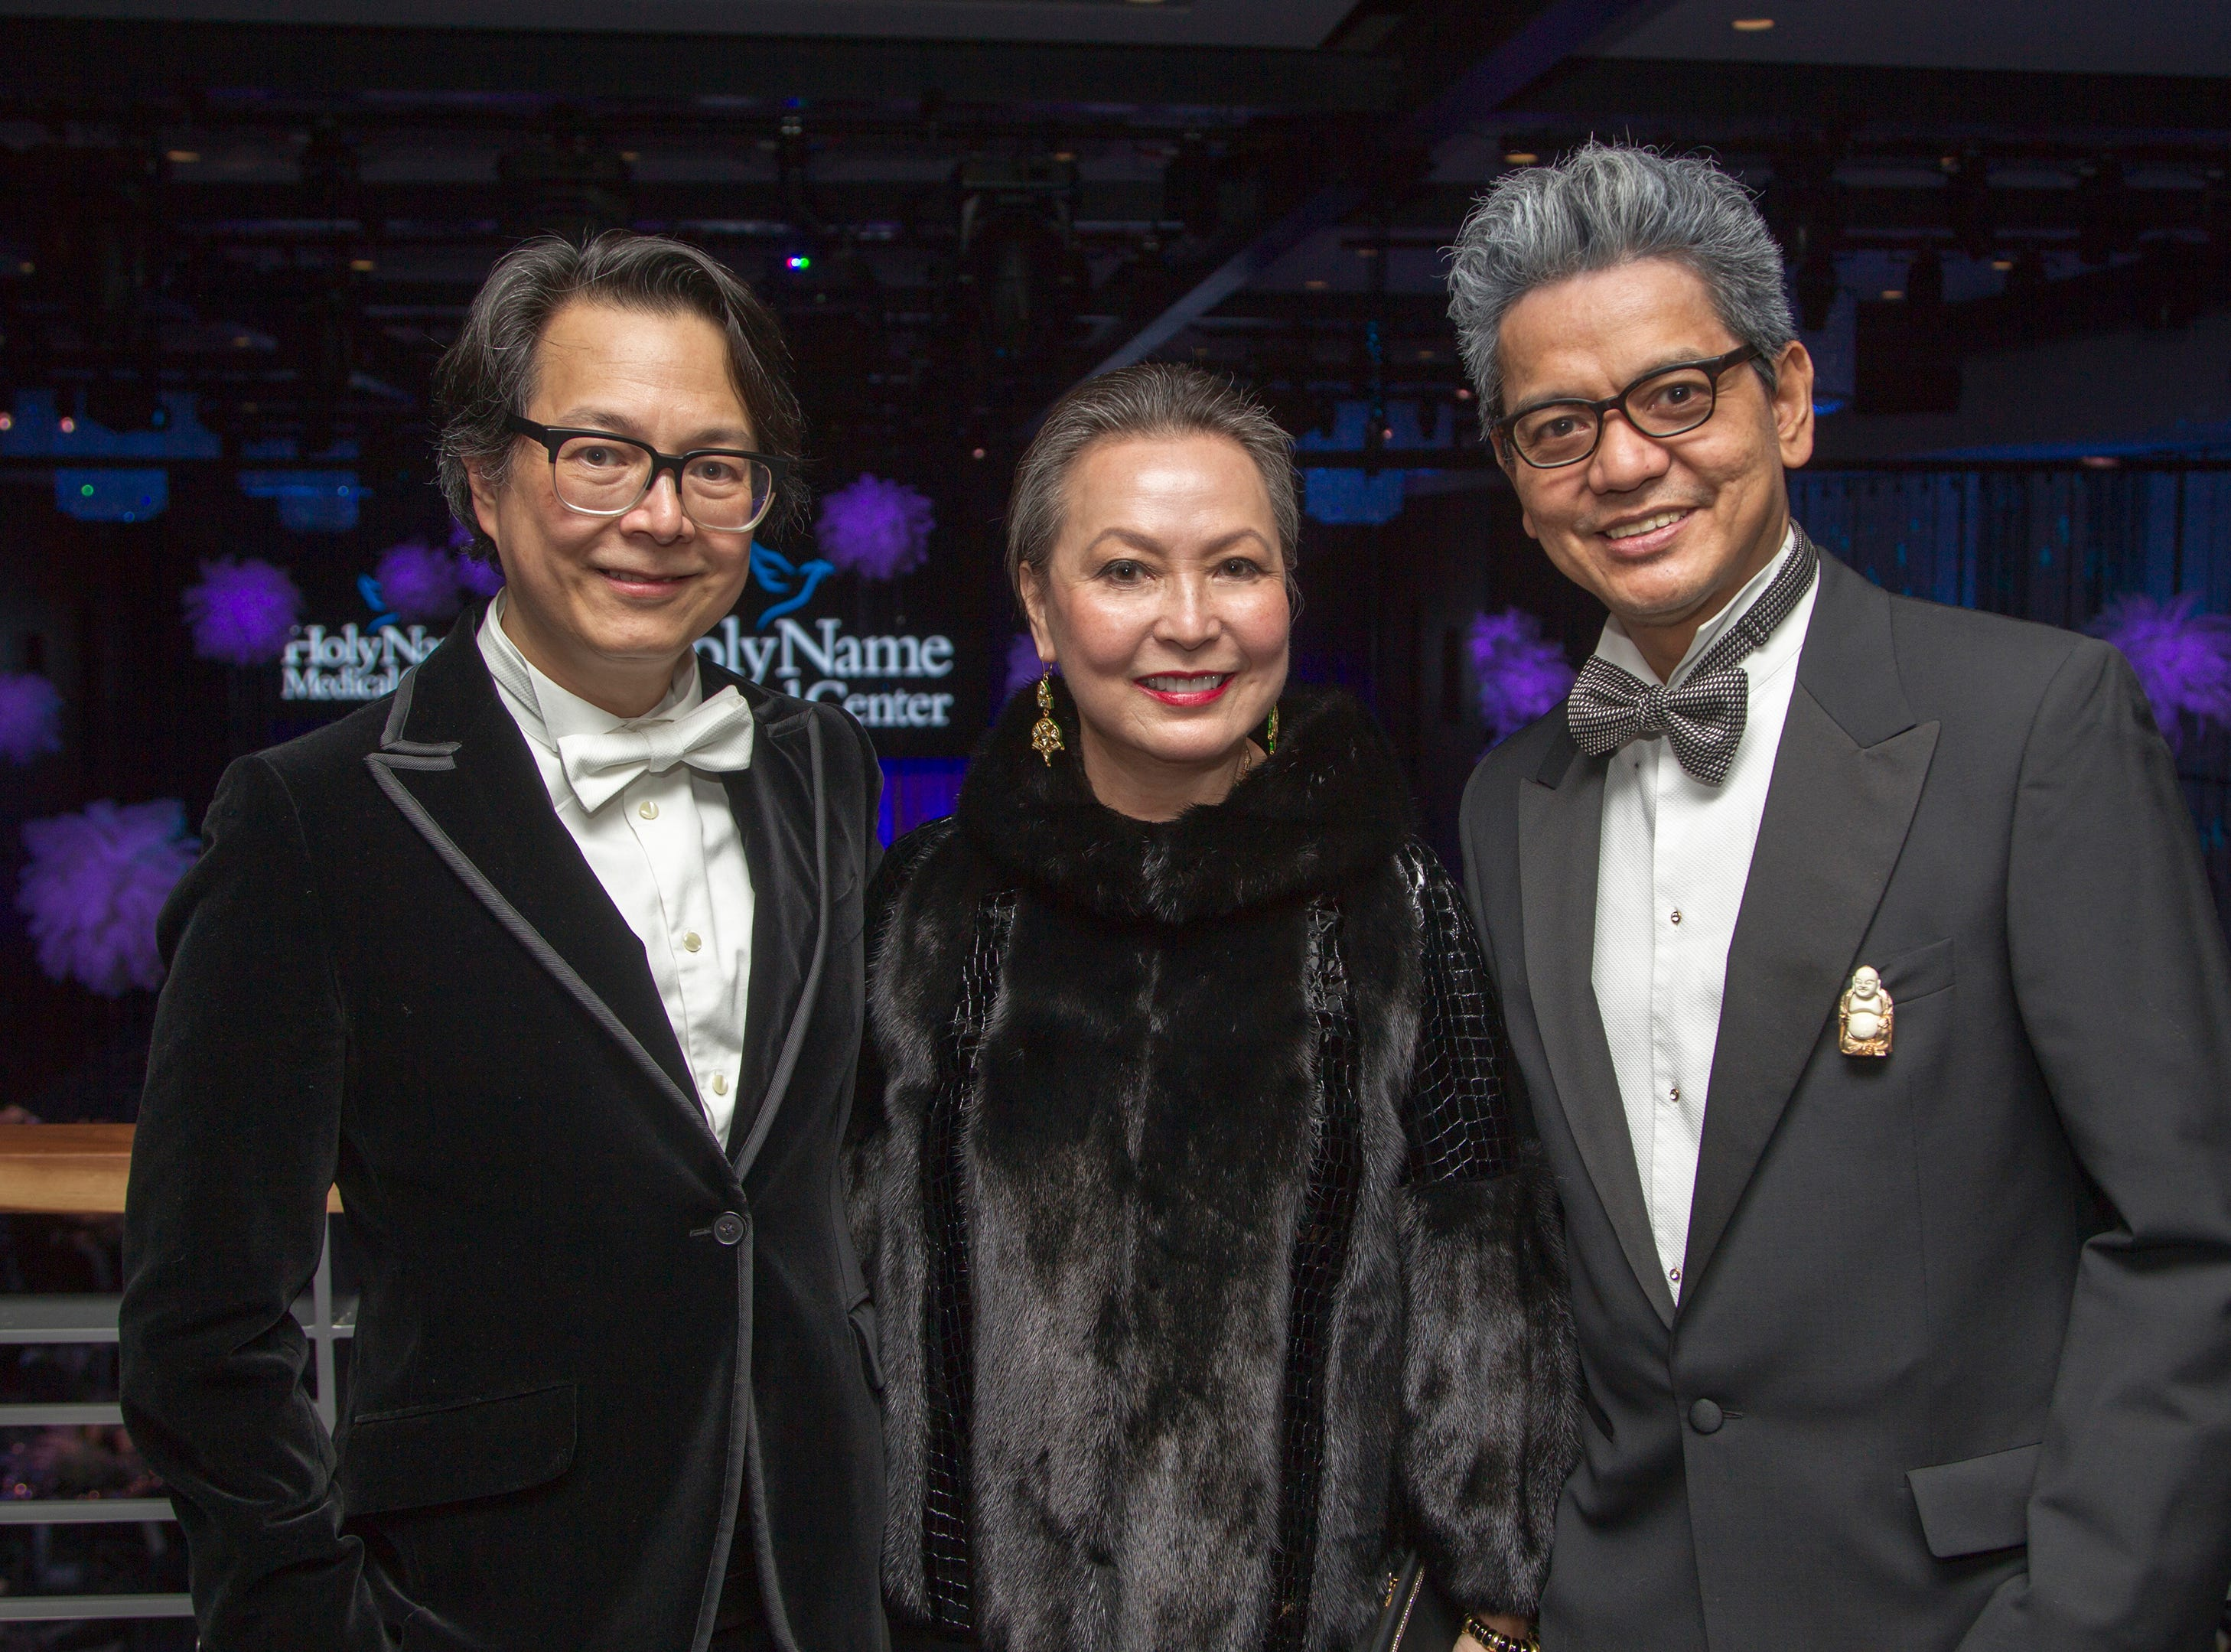 Greg Urra, Angelica Berrie, OJ Hofer. Holy Name Medical Center held its 2018 Founders Ball in NYC at Ziegfeld Ballroom. 11/17/2018